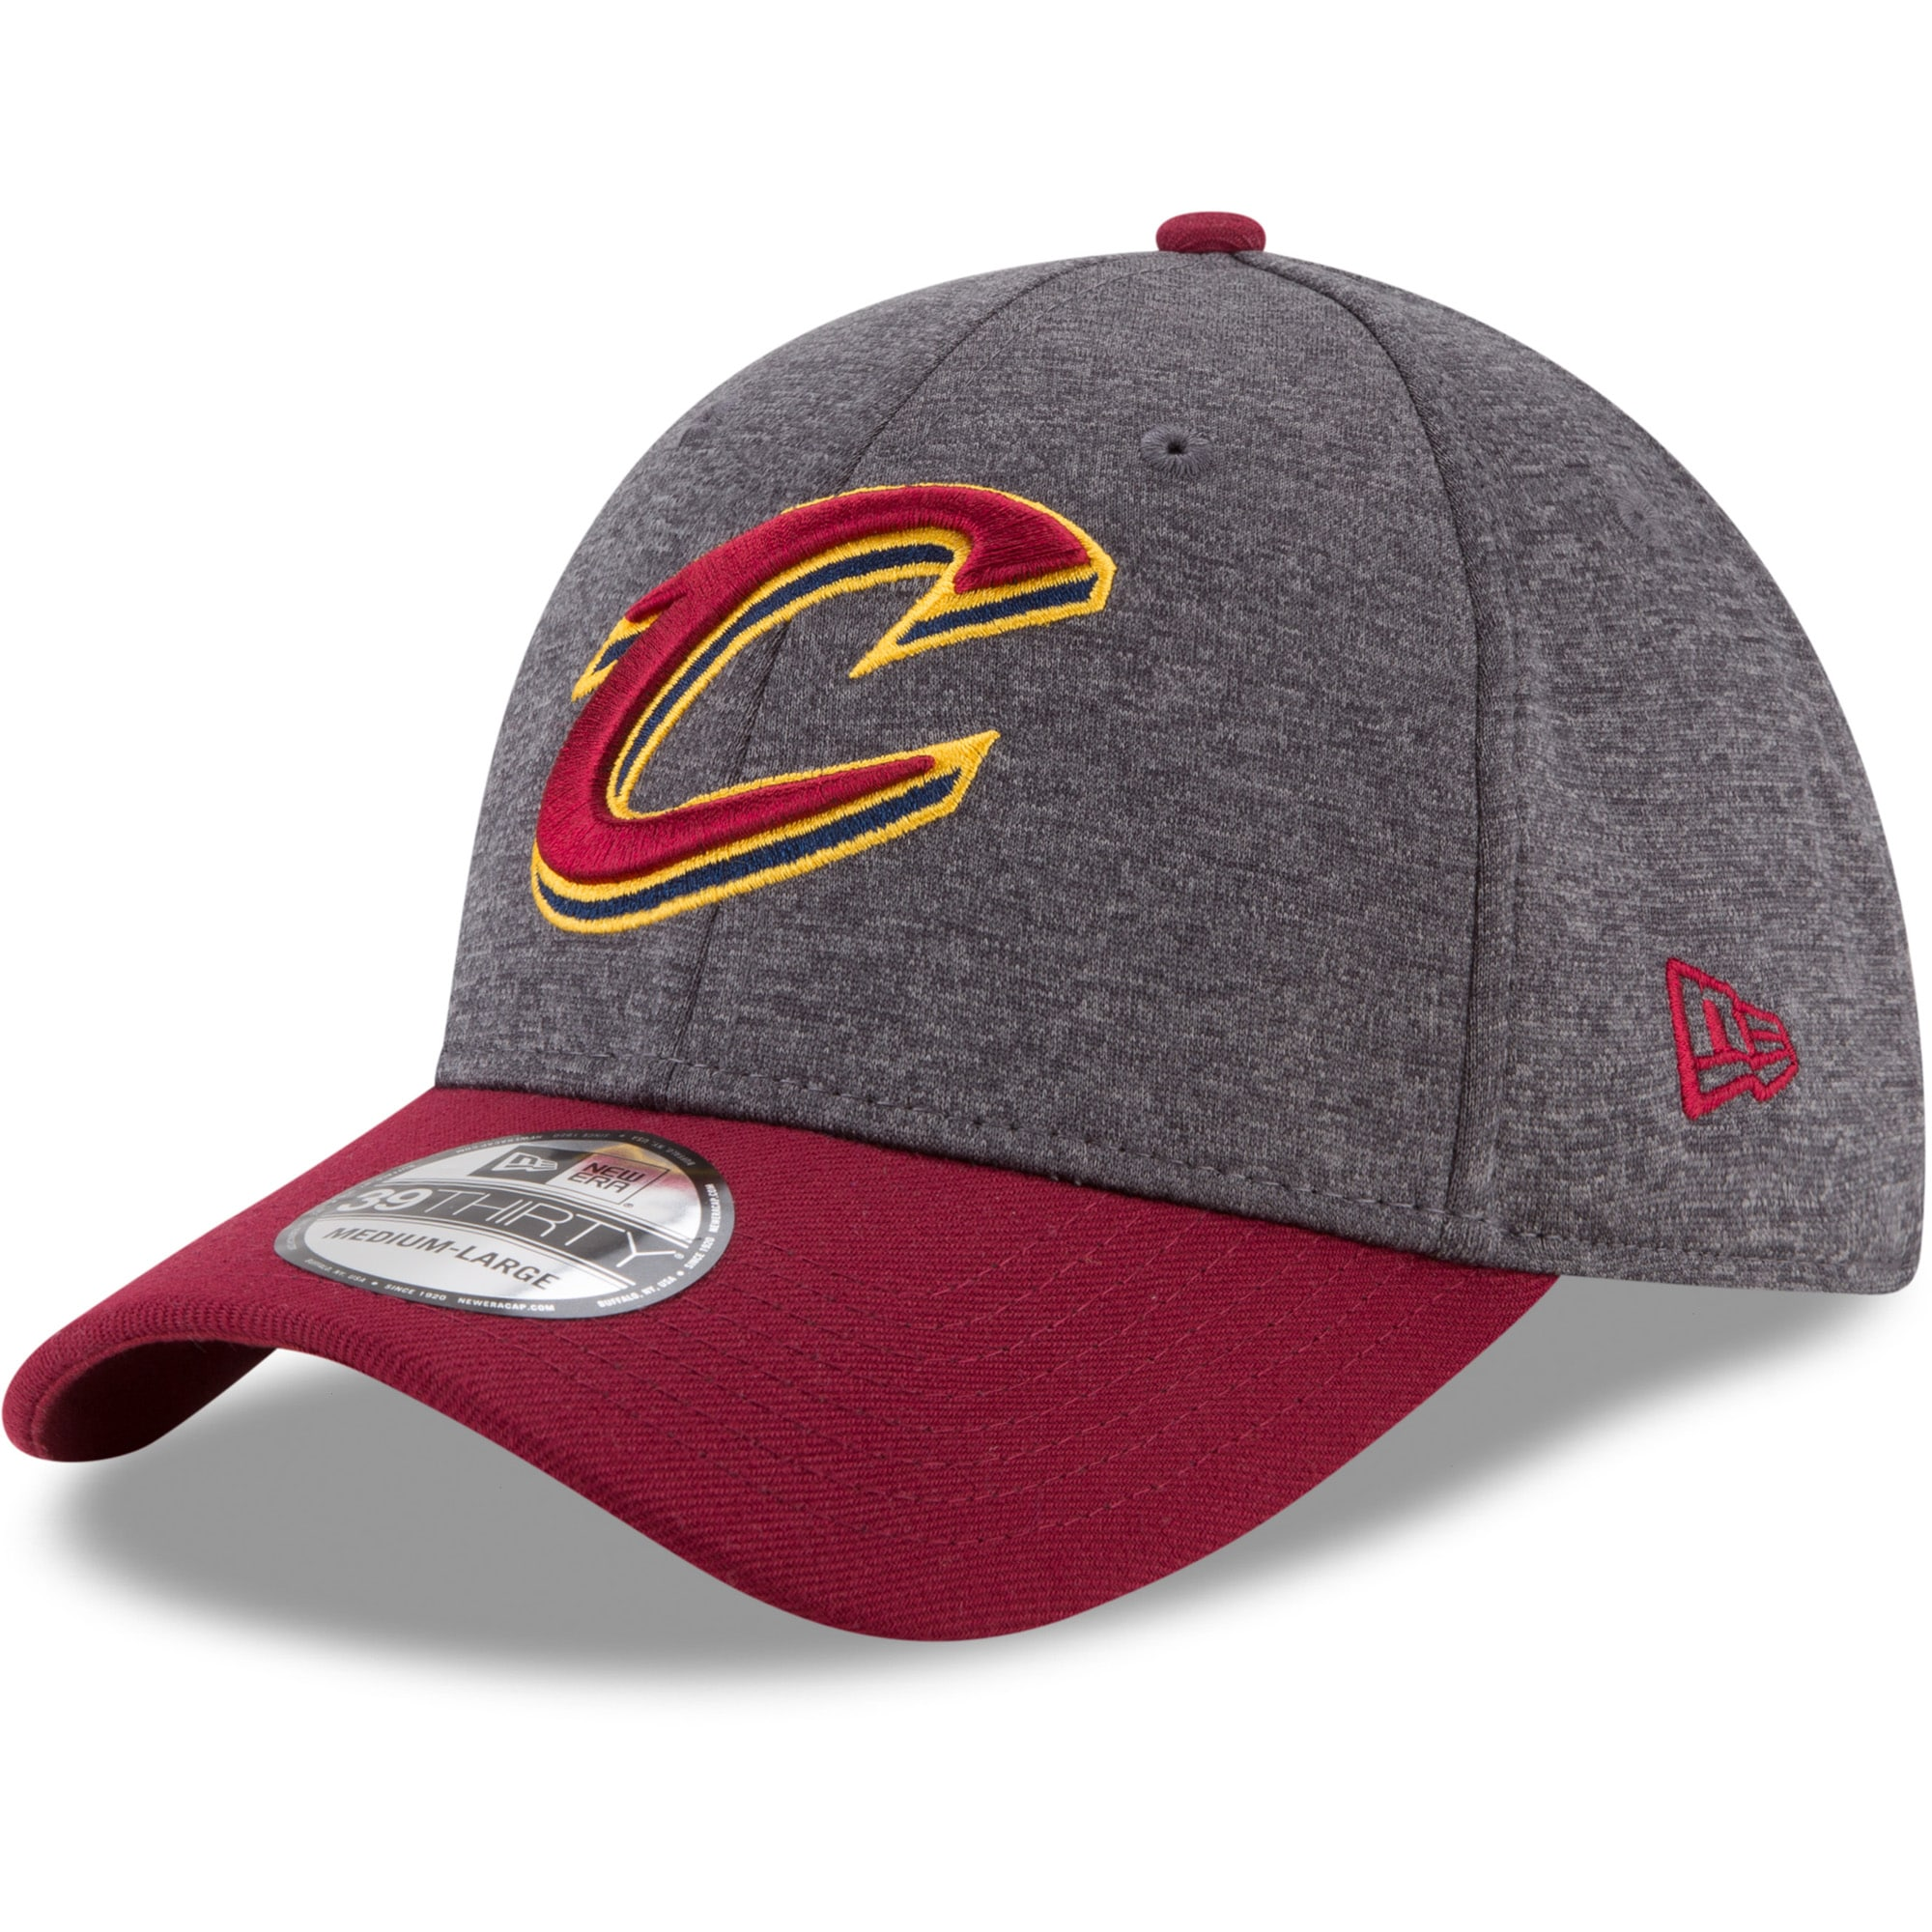 Cleveland Cavaliers New Era 39THIRTY Flex Hat - Heathered Gray/Wine